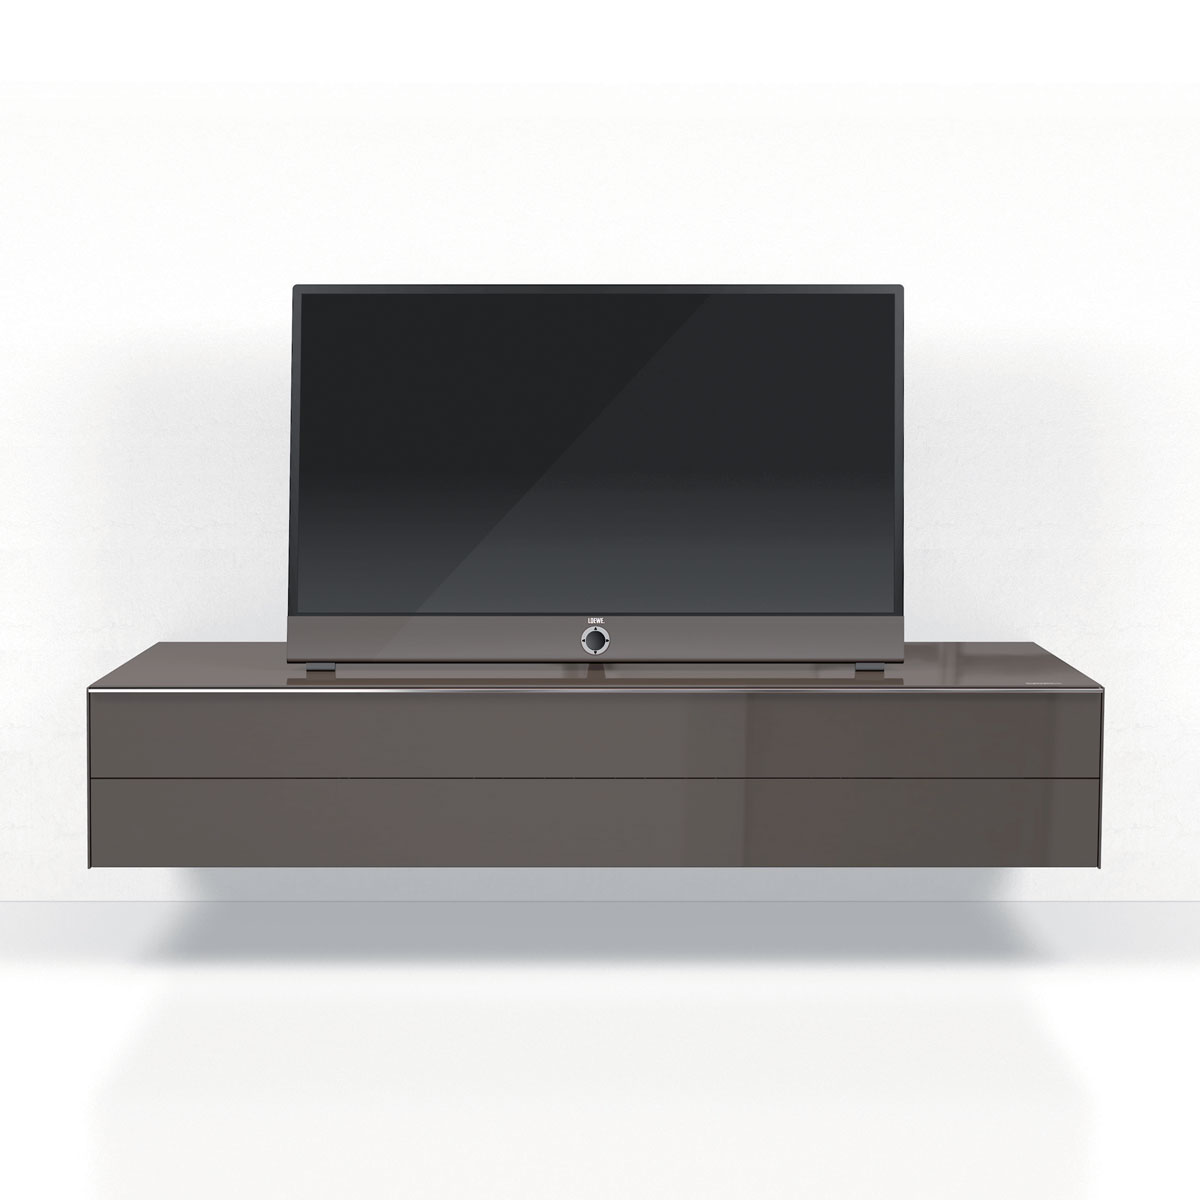 Lowboard, geschlossenes TV Möbel, mit verdeckter Kabelführung, mit Klappe, TV Lowboard, TV Sideboard, mit Schublade, mit Soundbarintegration, TV Regal, TV Möbel, TV Schrank, TV Rack, Hifi TV